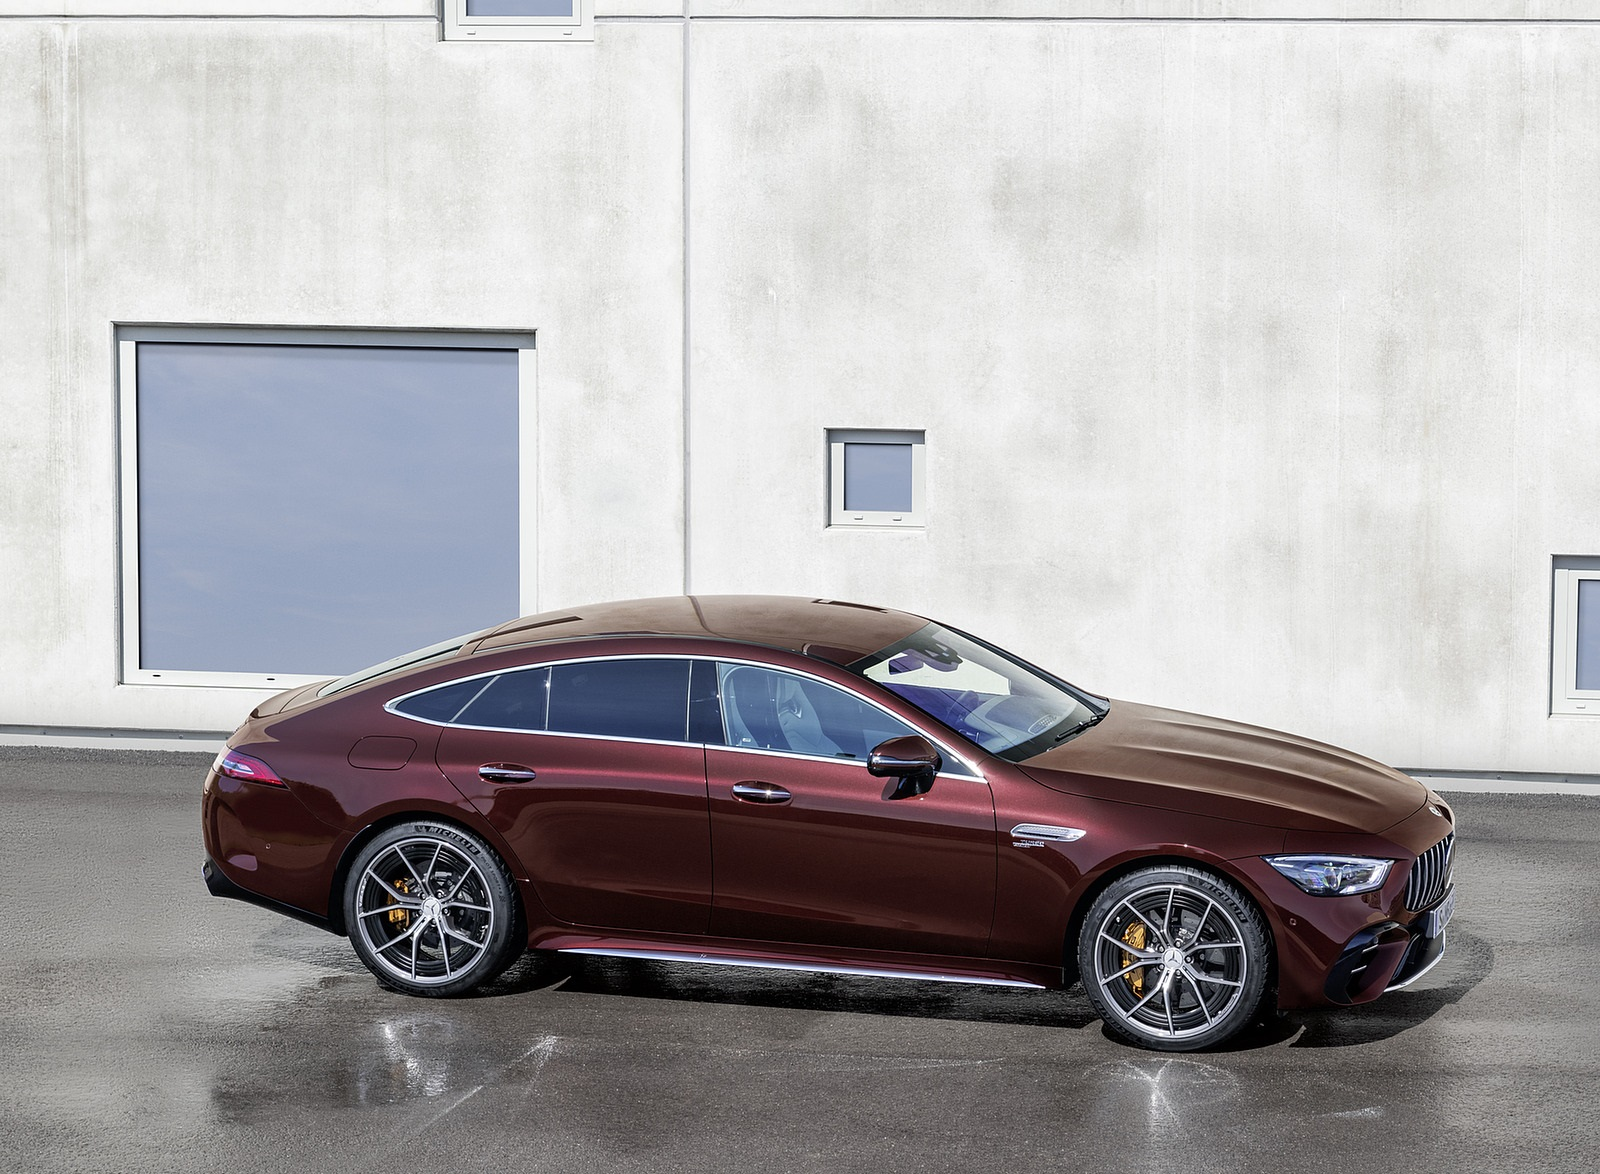 2022 Mercedes-AMG GT 53 4MATIC+ 4-Door Coupe (Color: Rubellite Red) Side Wallpapers (8)